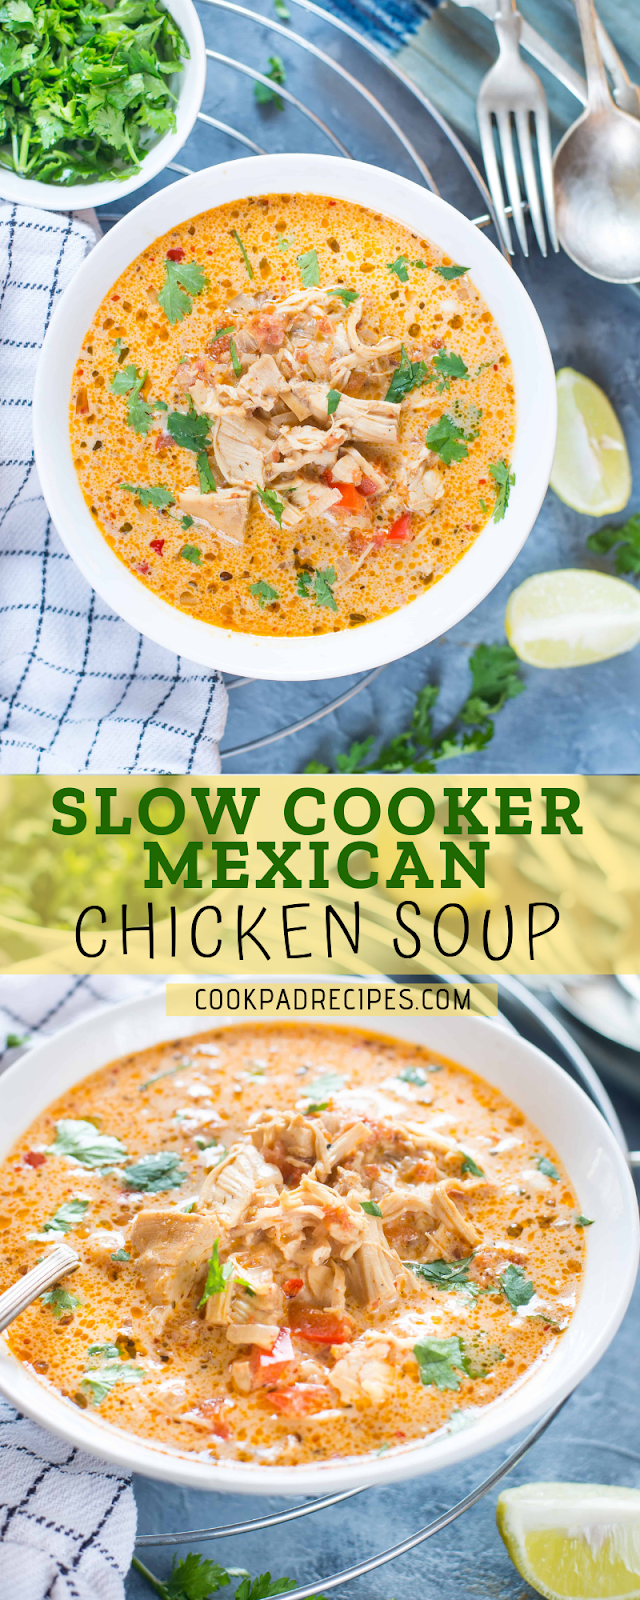 SLOW COOKER MEXICAN CHICKEN SOUP – KETO / LOW CARB